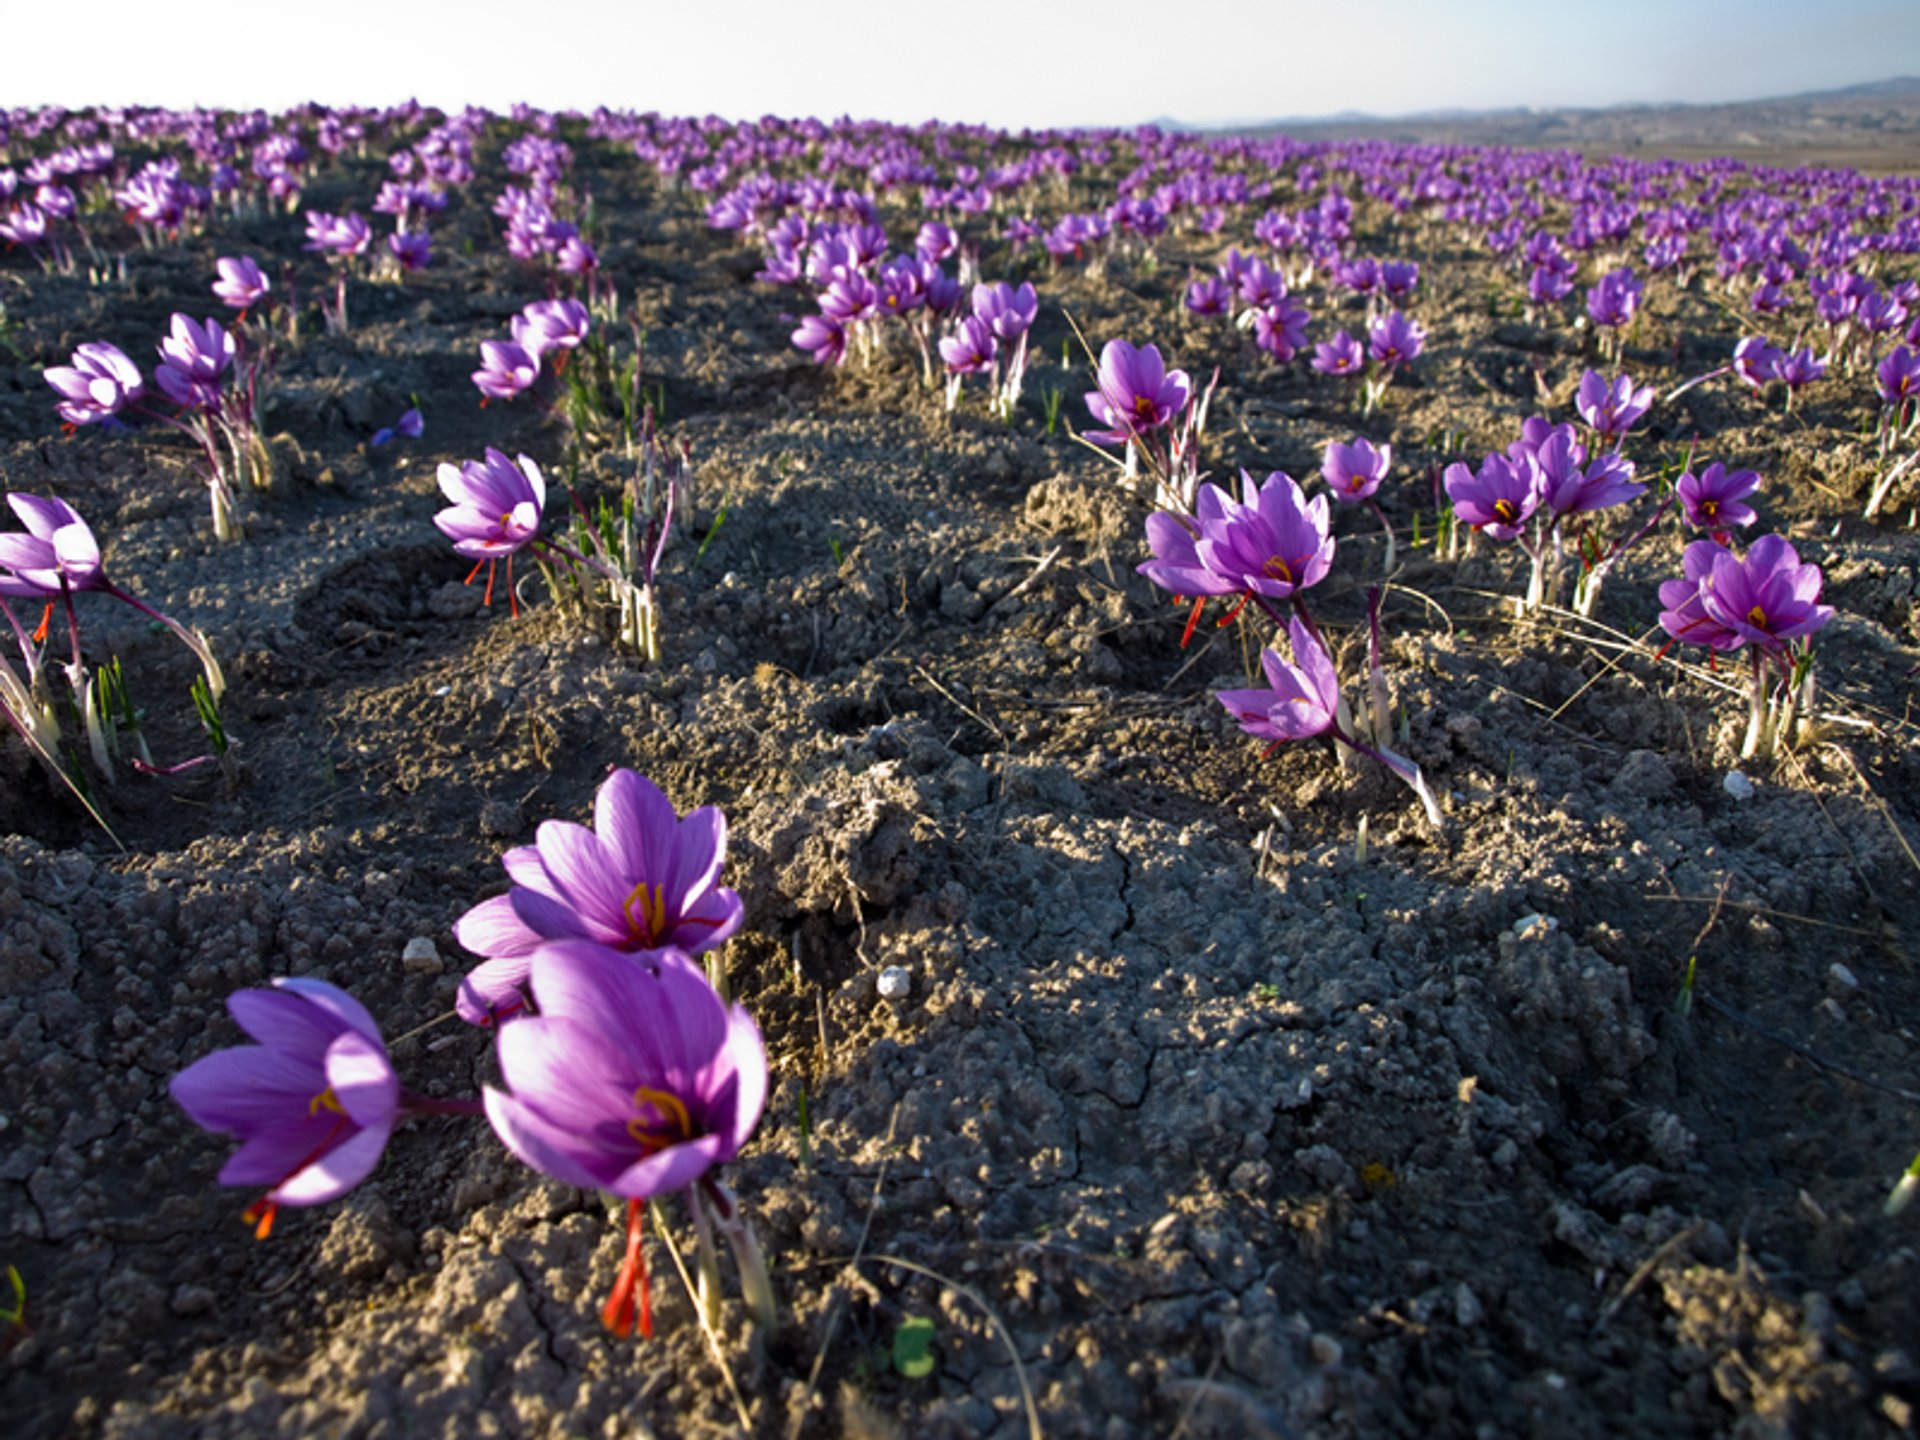 Saffron Harvest in Greece - Best Time